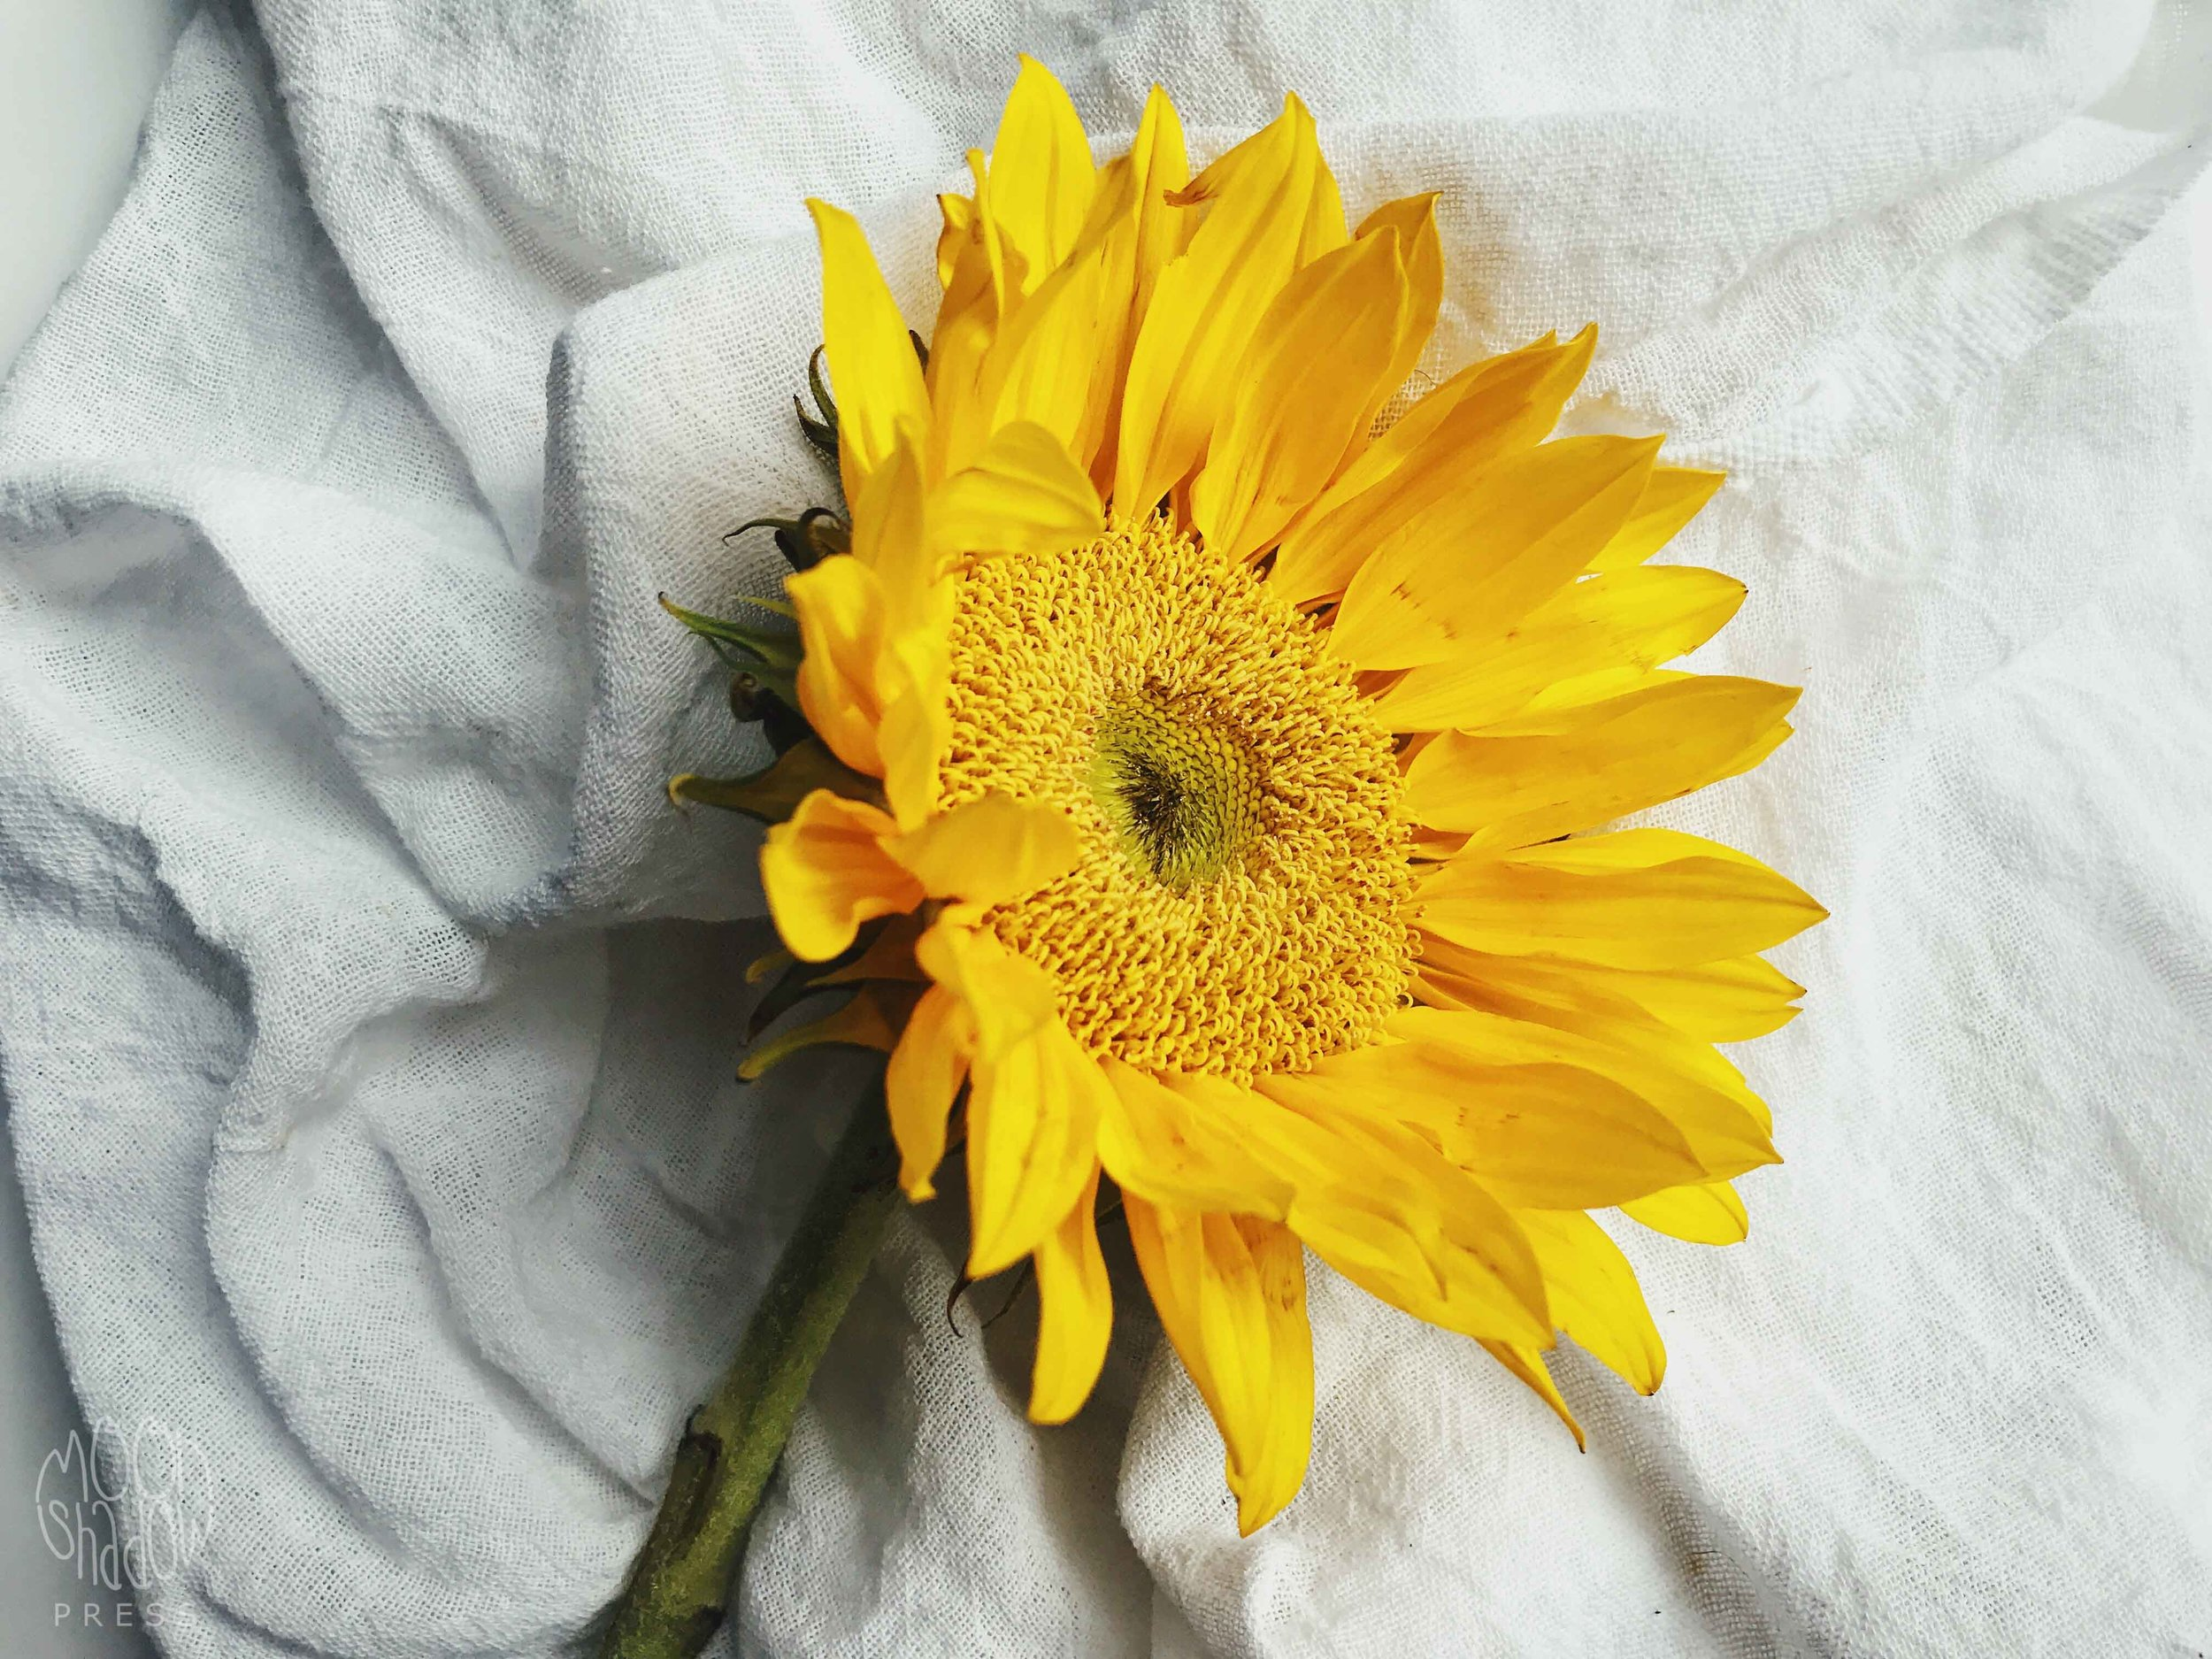 Sunflowers9L.jpg